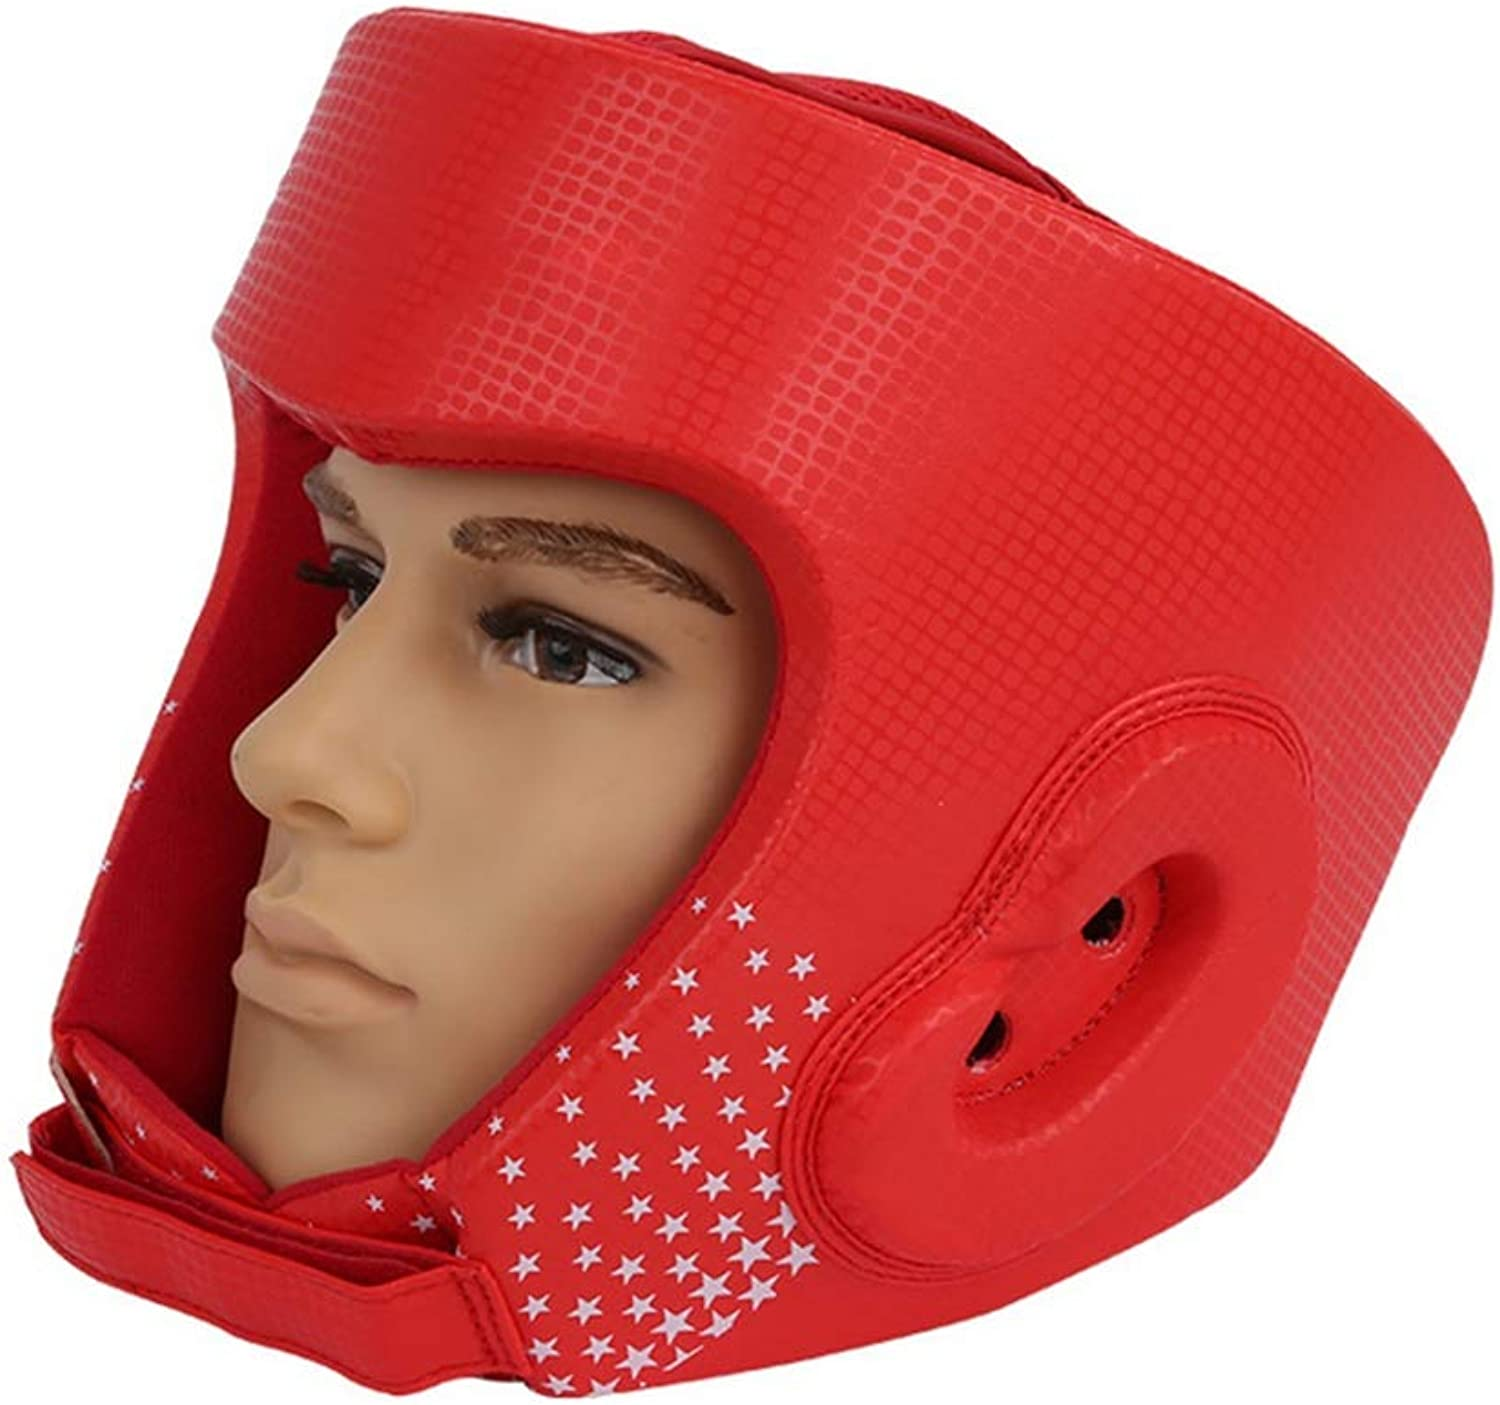 Headgear Head Guard Red color Boxing MMA Kickboxing Head Gear Boxing Helmet Head Guard Sparring Muay Thai Kick Brace Head Predection Headgear for Boxing Sparring Practice (Size   M)